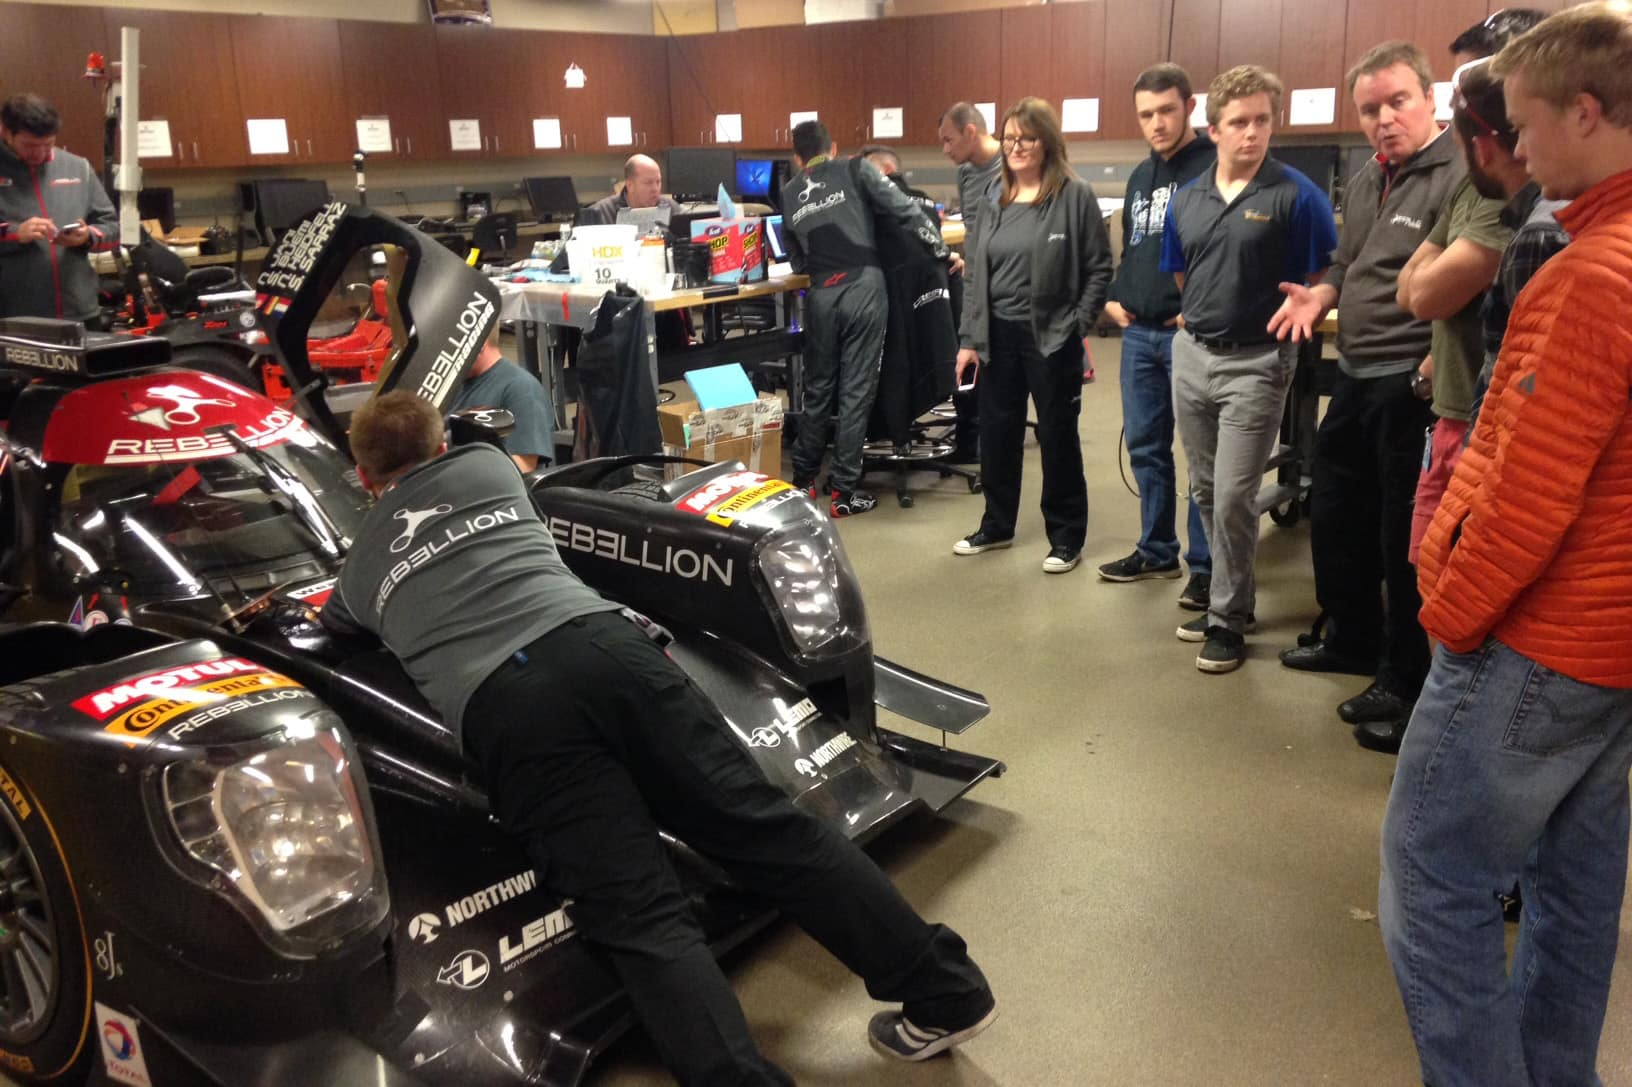 students in the Center for Motorsports Engineering